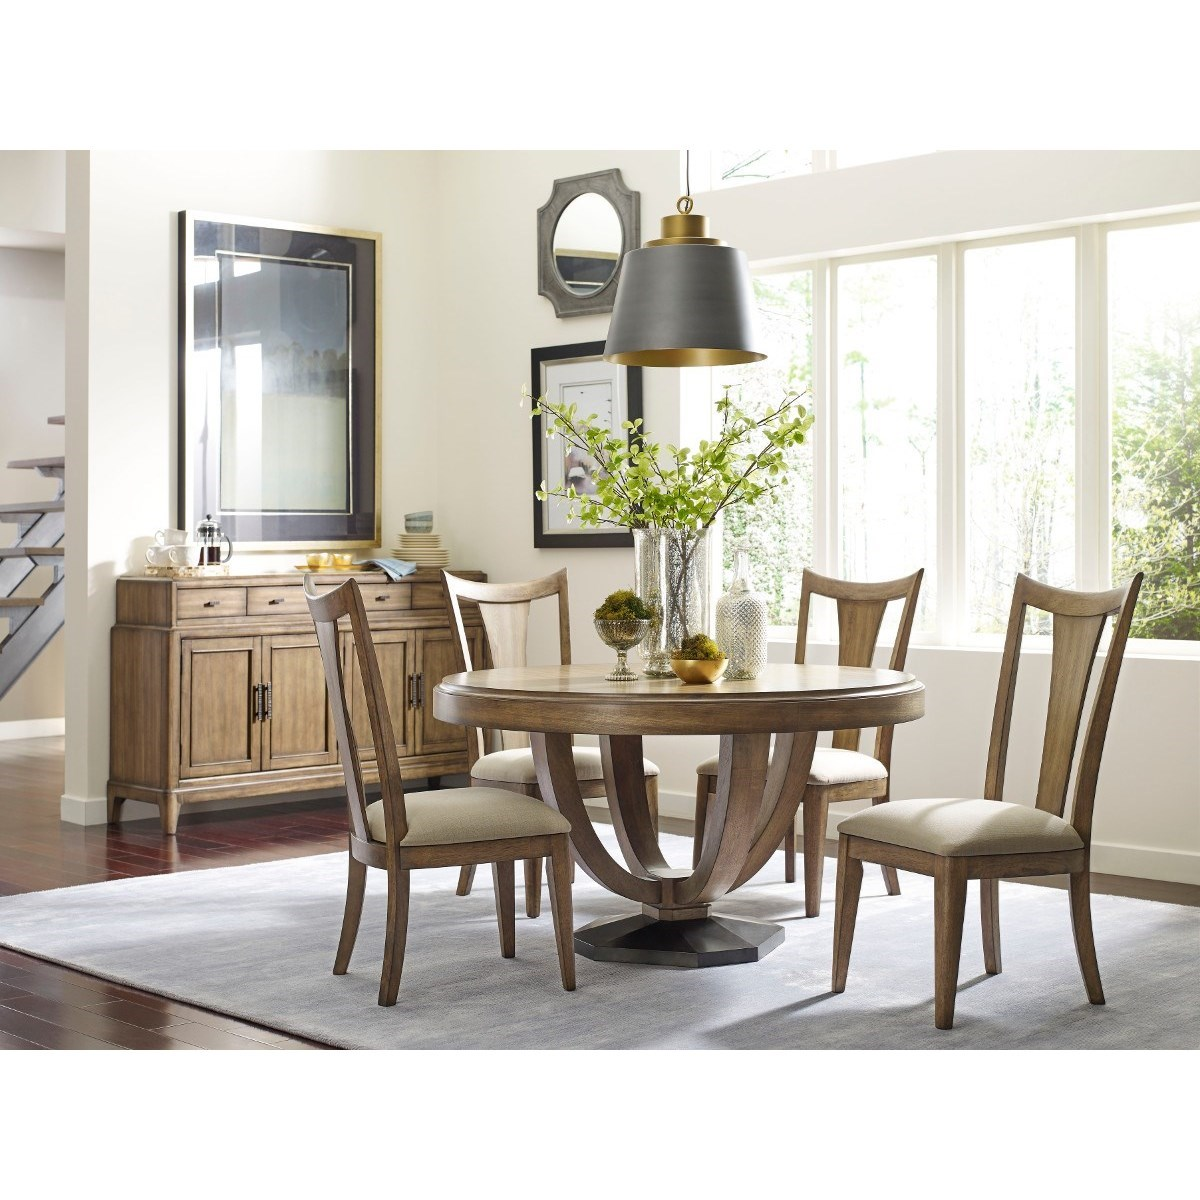 American drew evoke casual dining room group hudson 39 s for Casual dining room